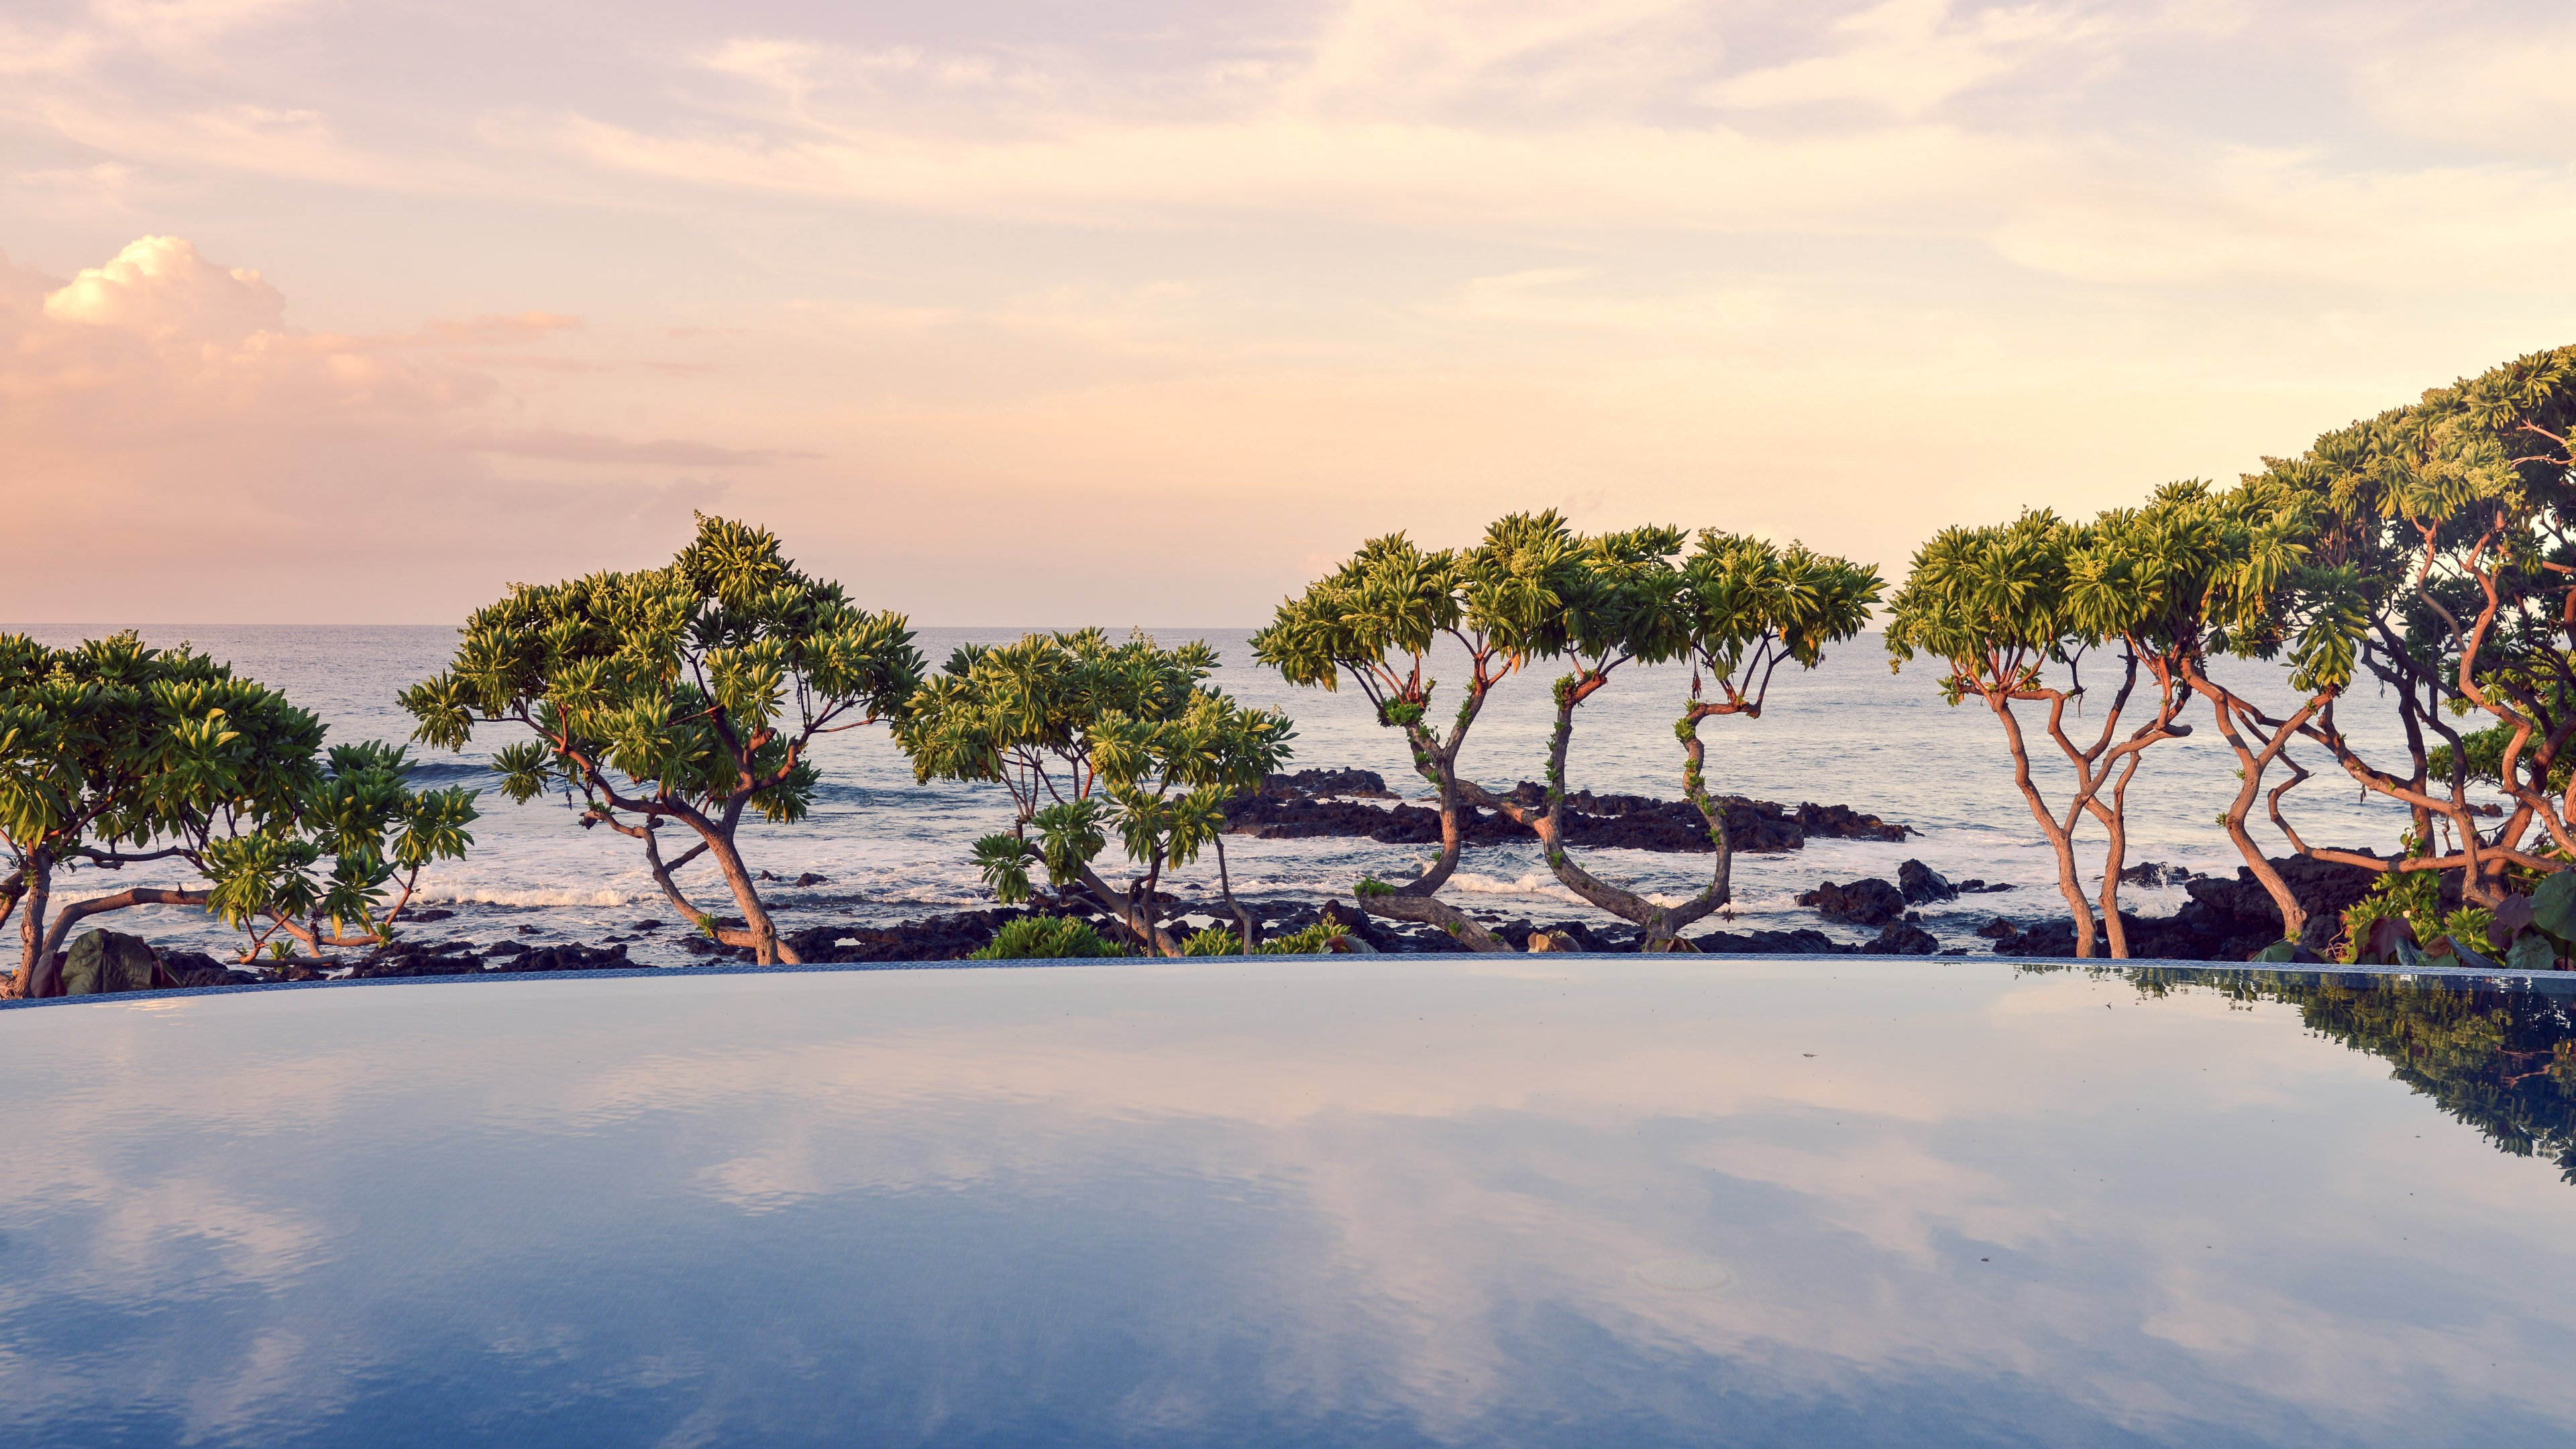 Trees on the ocean side HD wallpaper